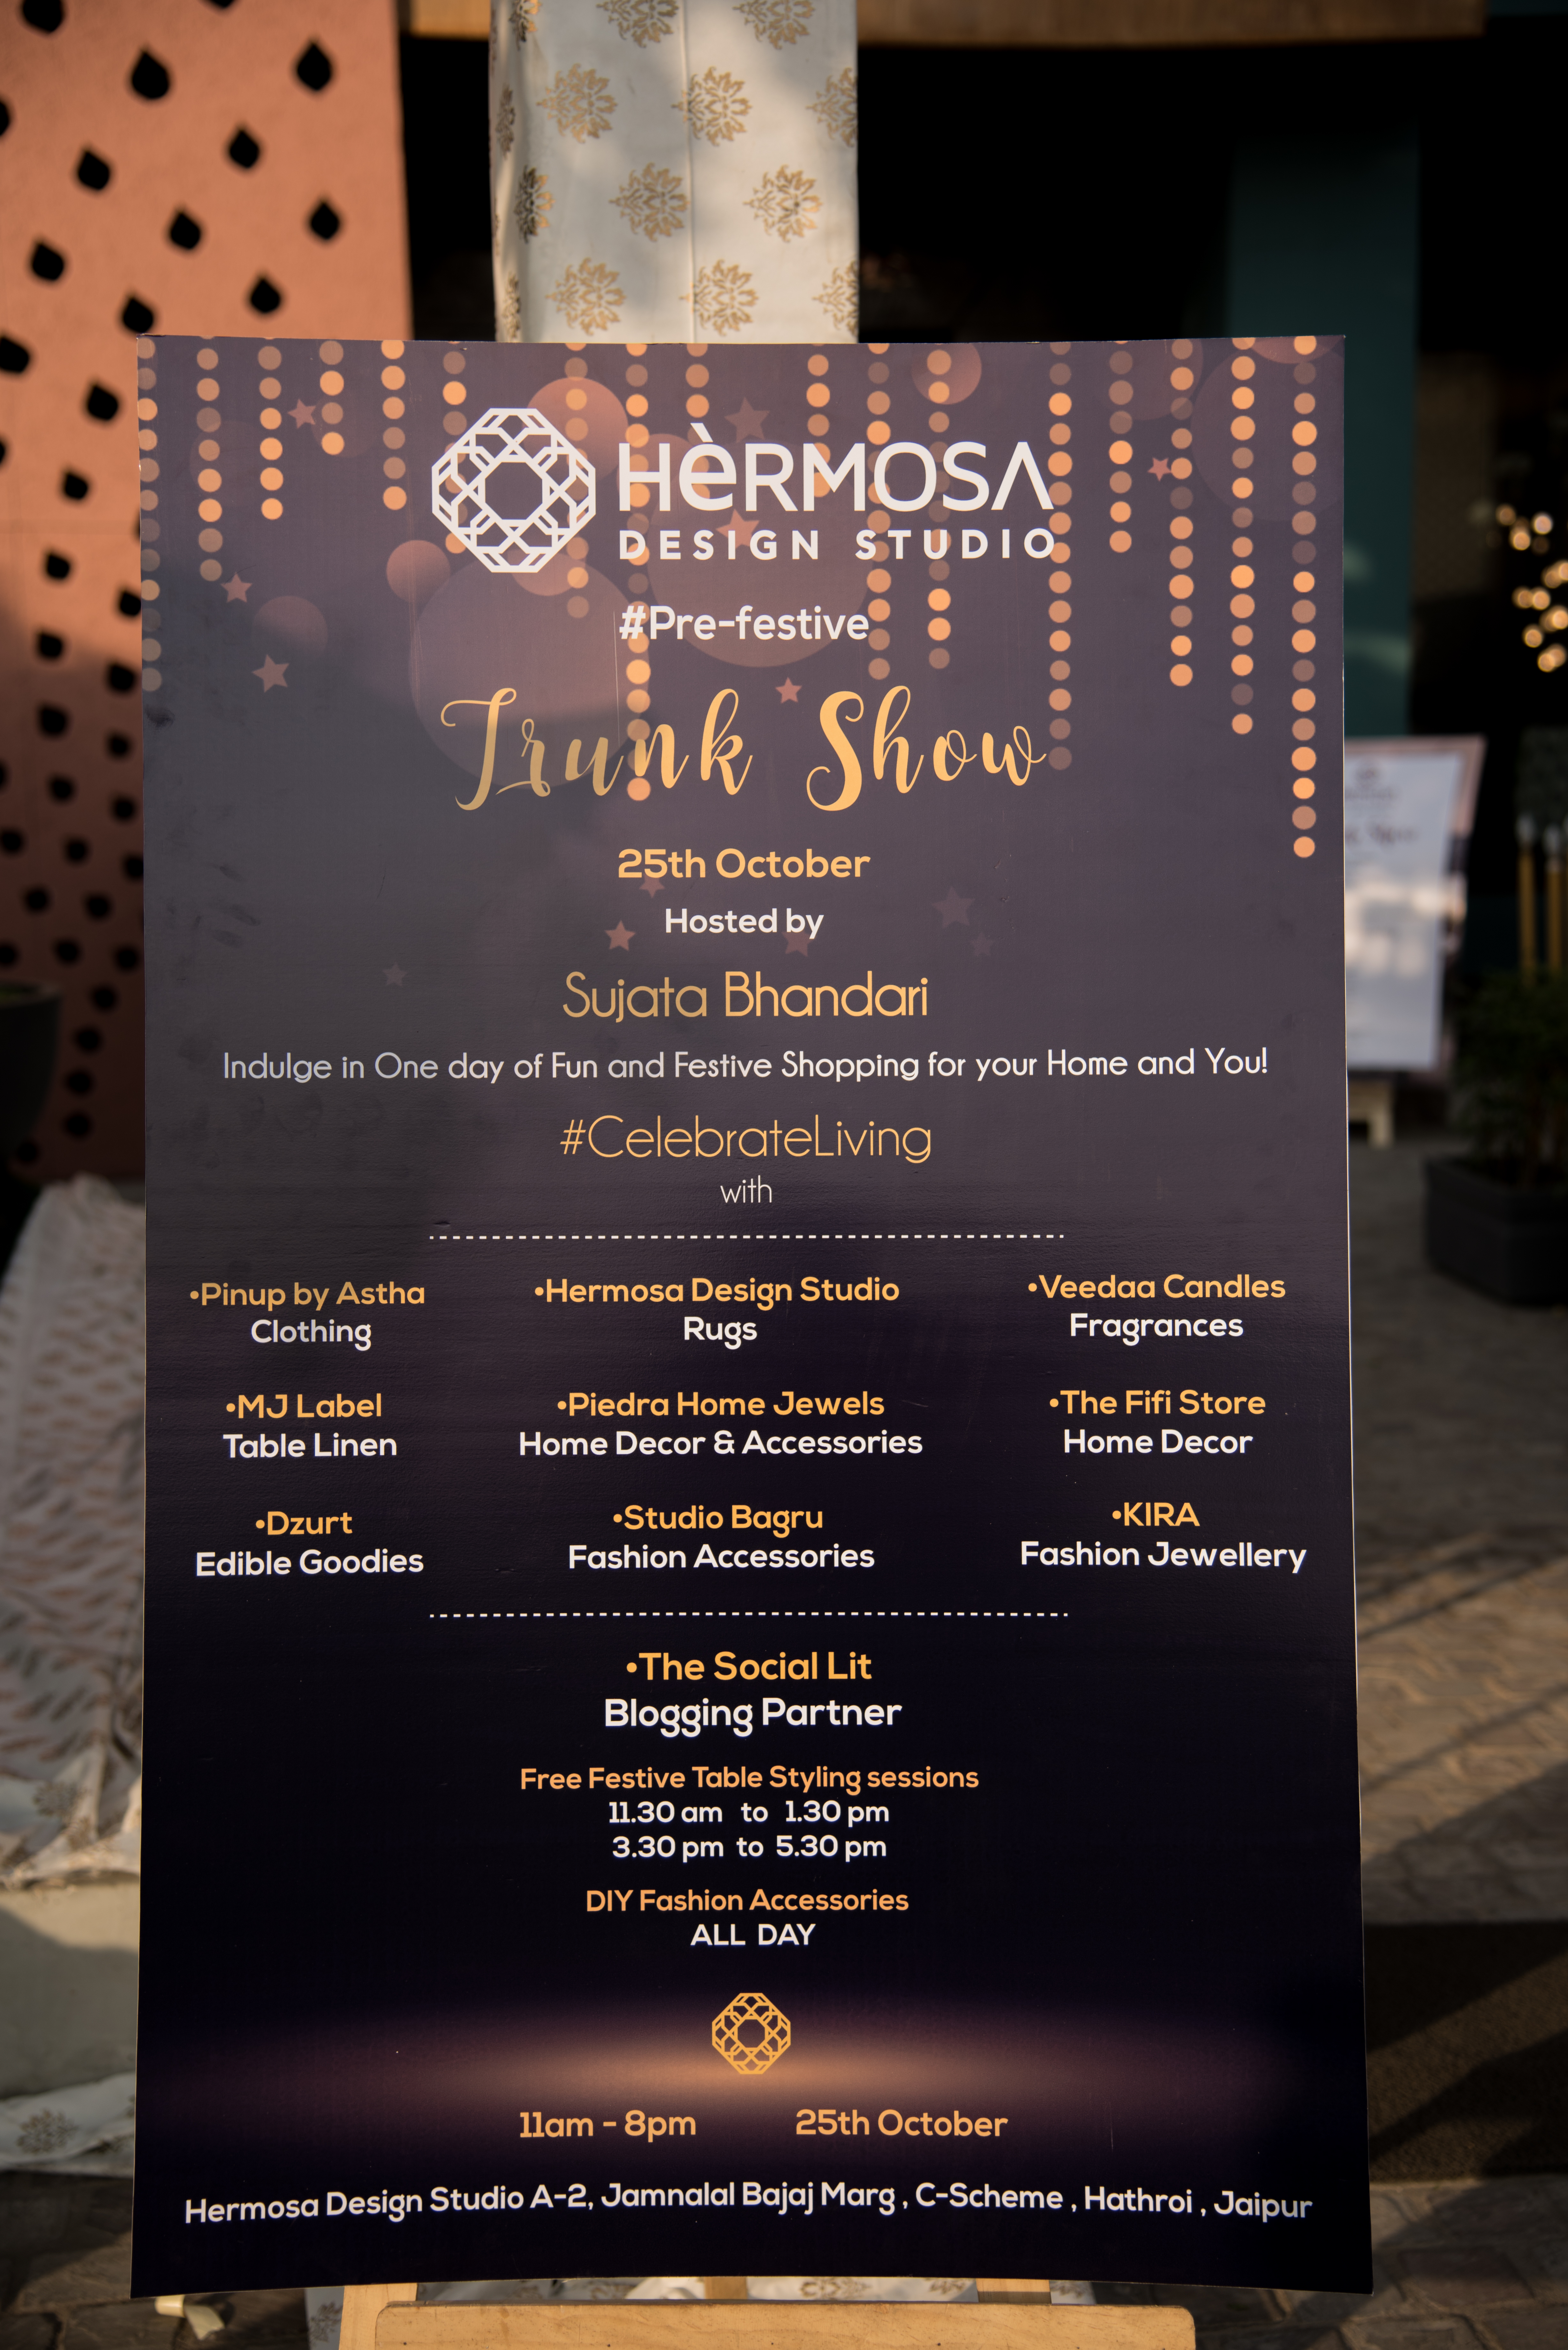 The festive season in the city began on a high note as Jaipur's most luxurious pre-festive trunk show, hosted by Hermosa Design Studio, kicked off with fervor last Thursday.